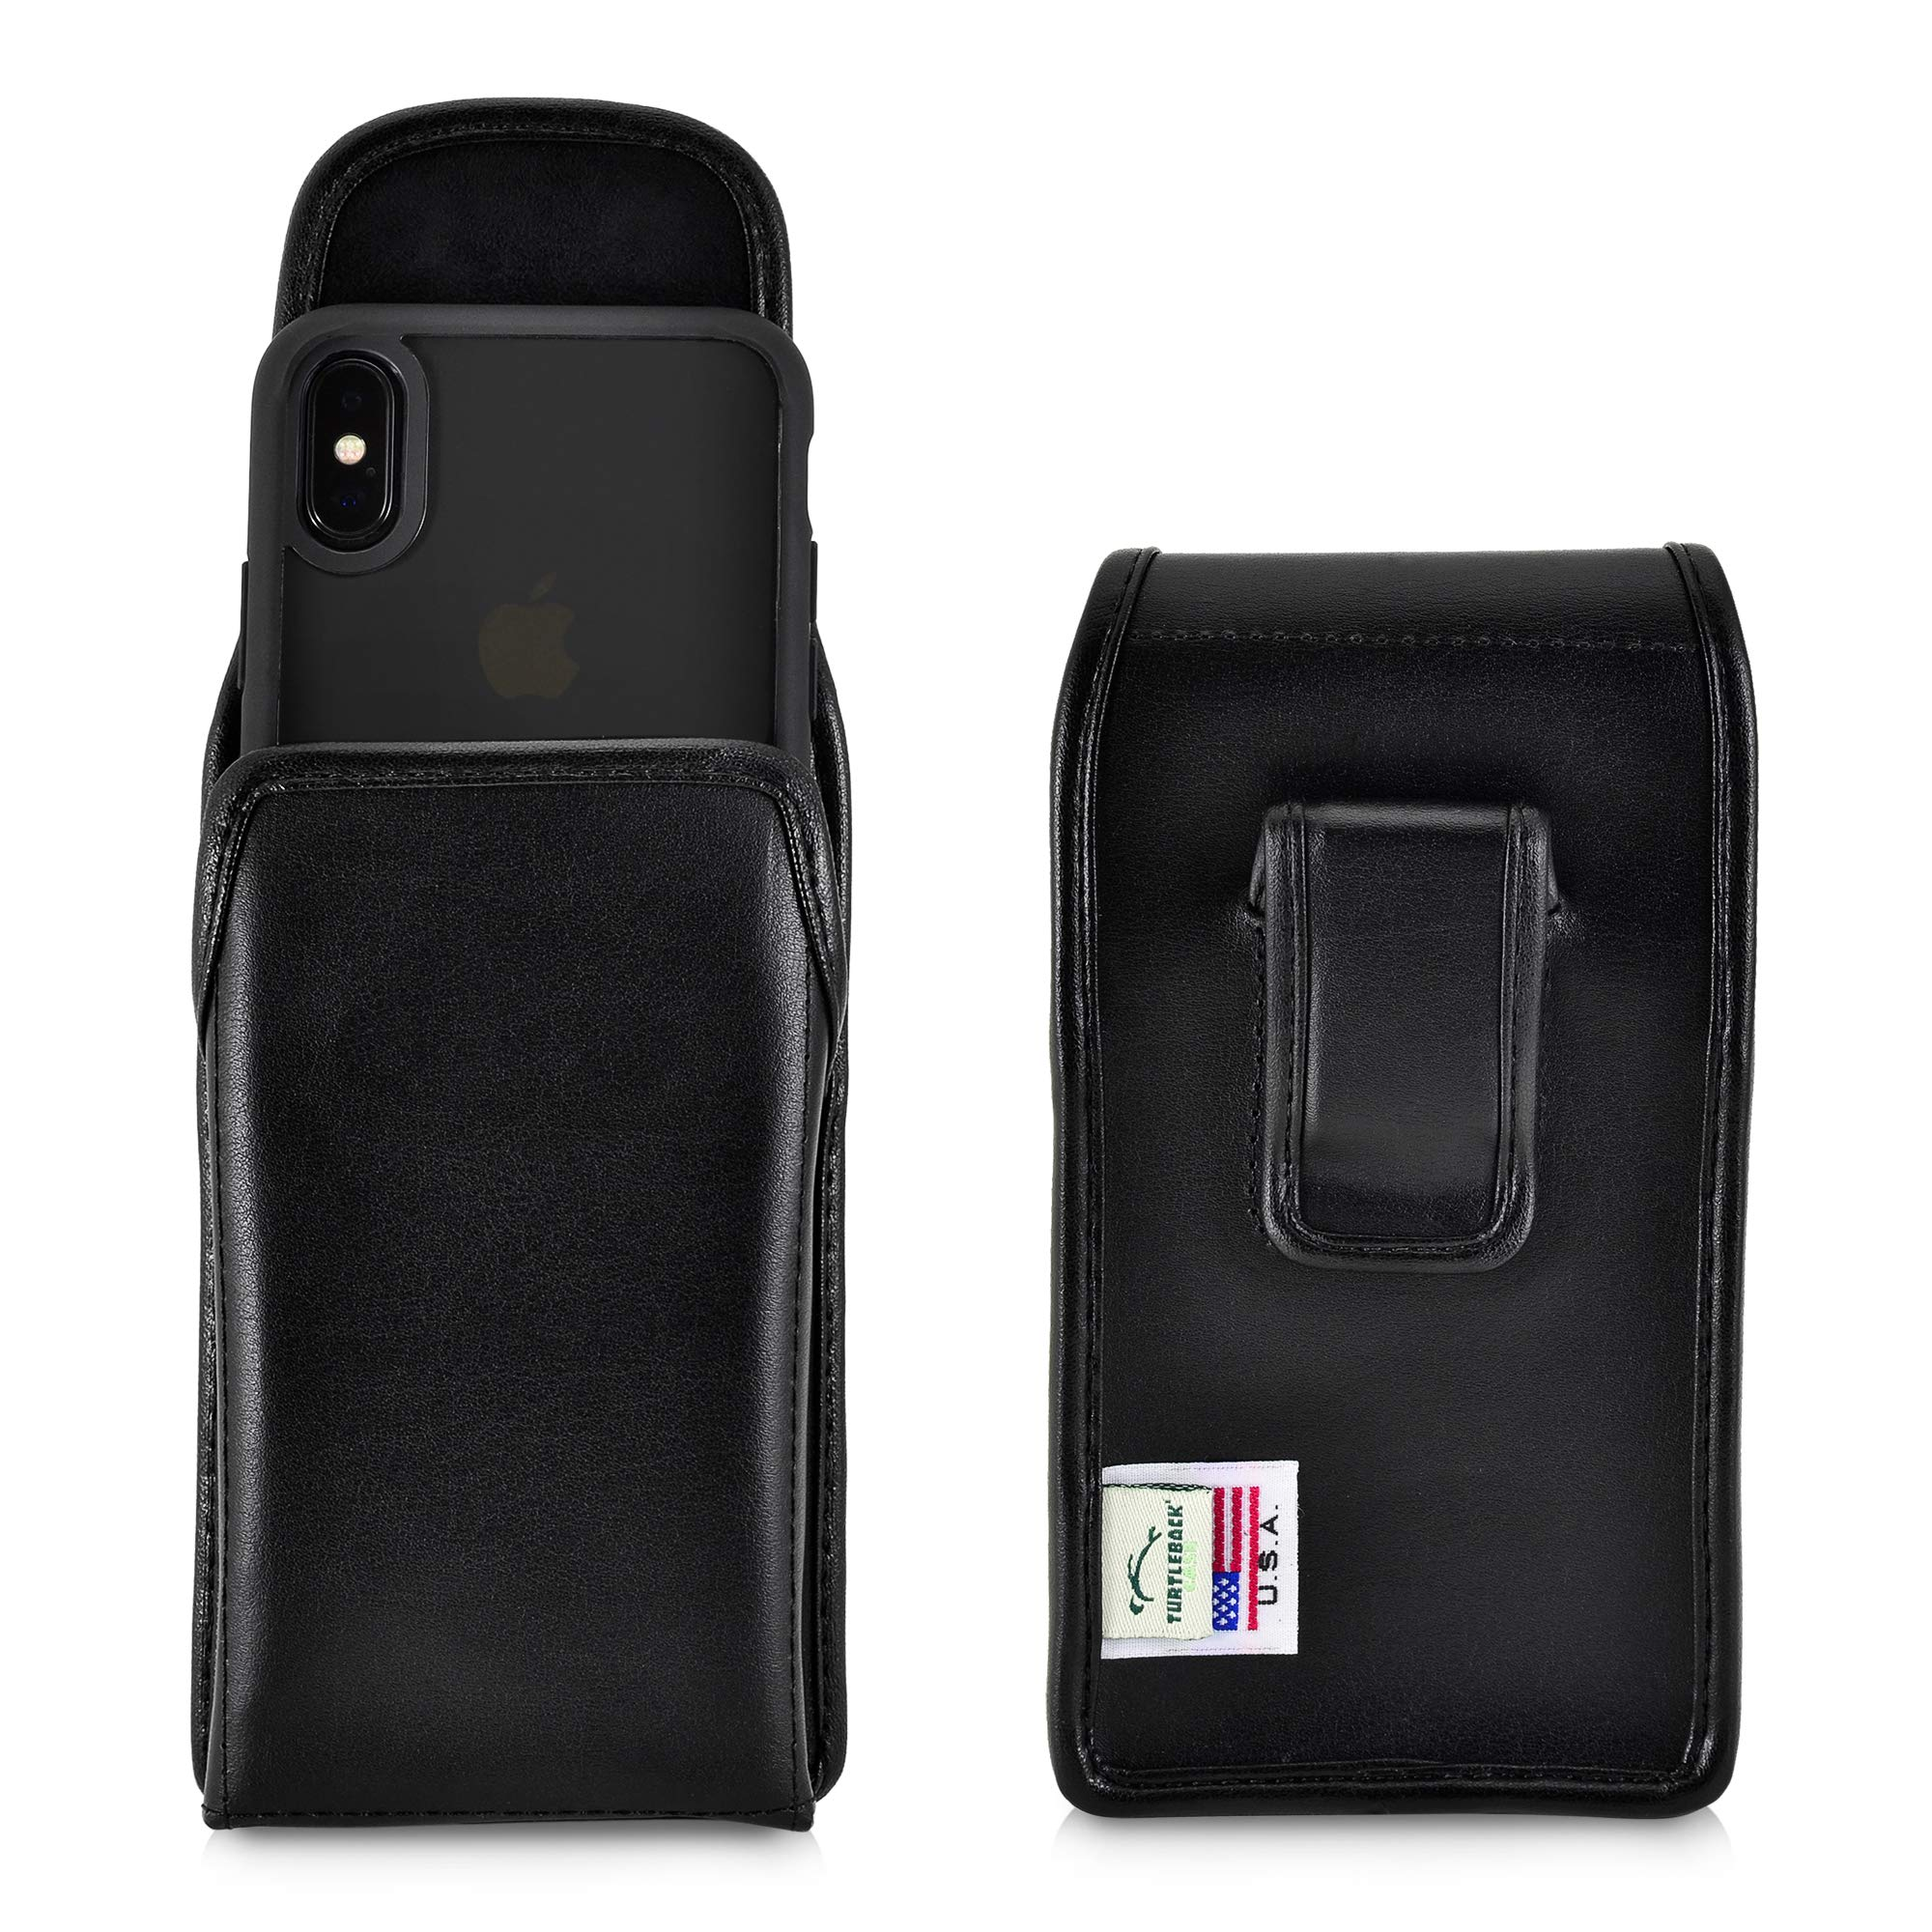 Turtleback Holster Designed for iPhone 11 Pro (2019) iPhone Xs (2018) and iPhone X (2017) Vertical Belt Case Black Leather Pouch with Executive Belt Clip, Made in USA